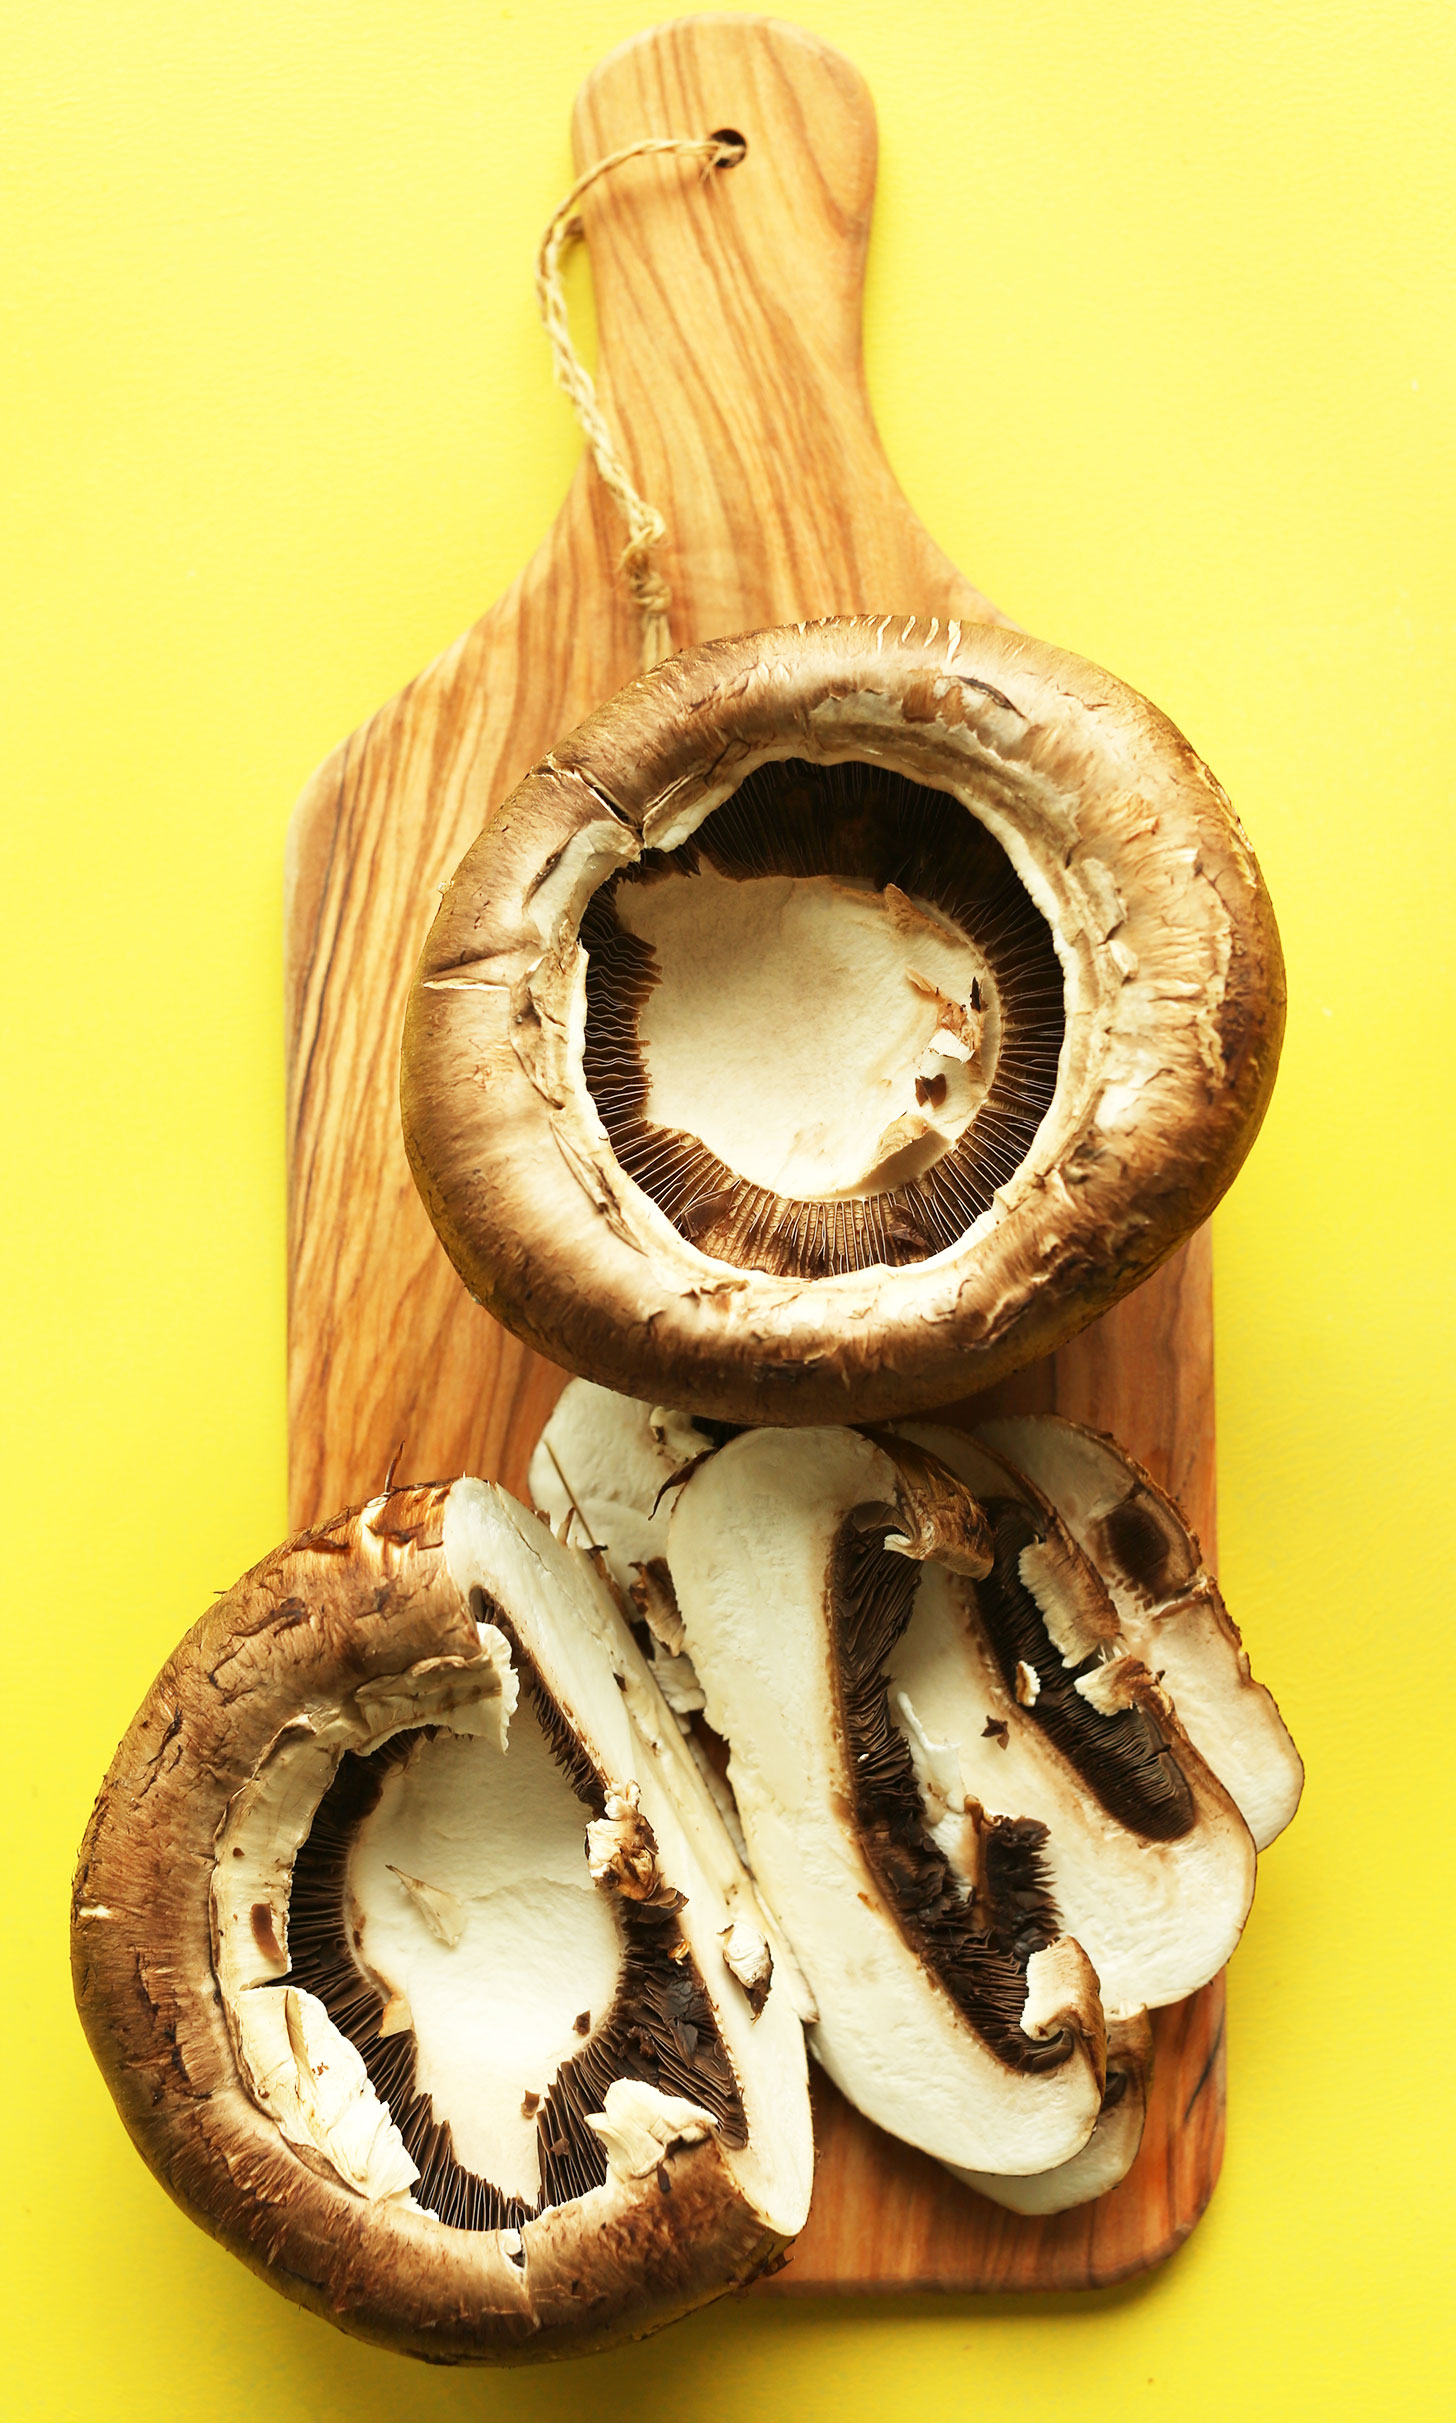 Sliced portobello mushrooms for making a delicious gluten-free plant-based stir fry recipe